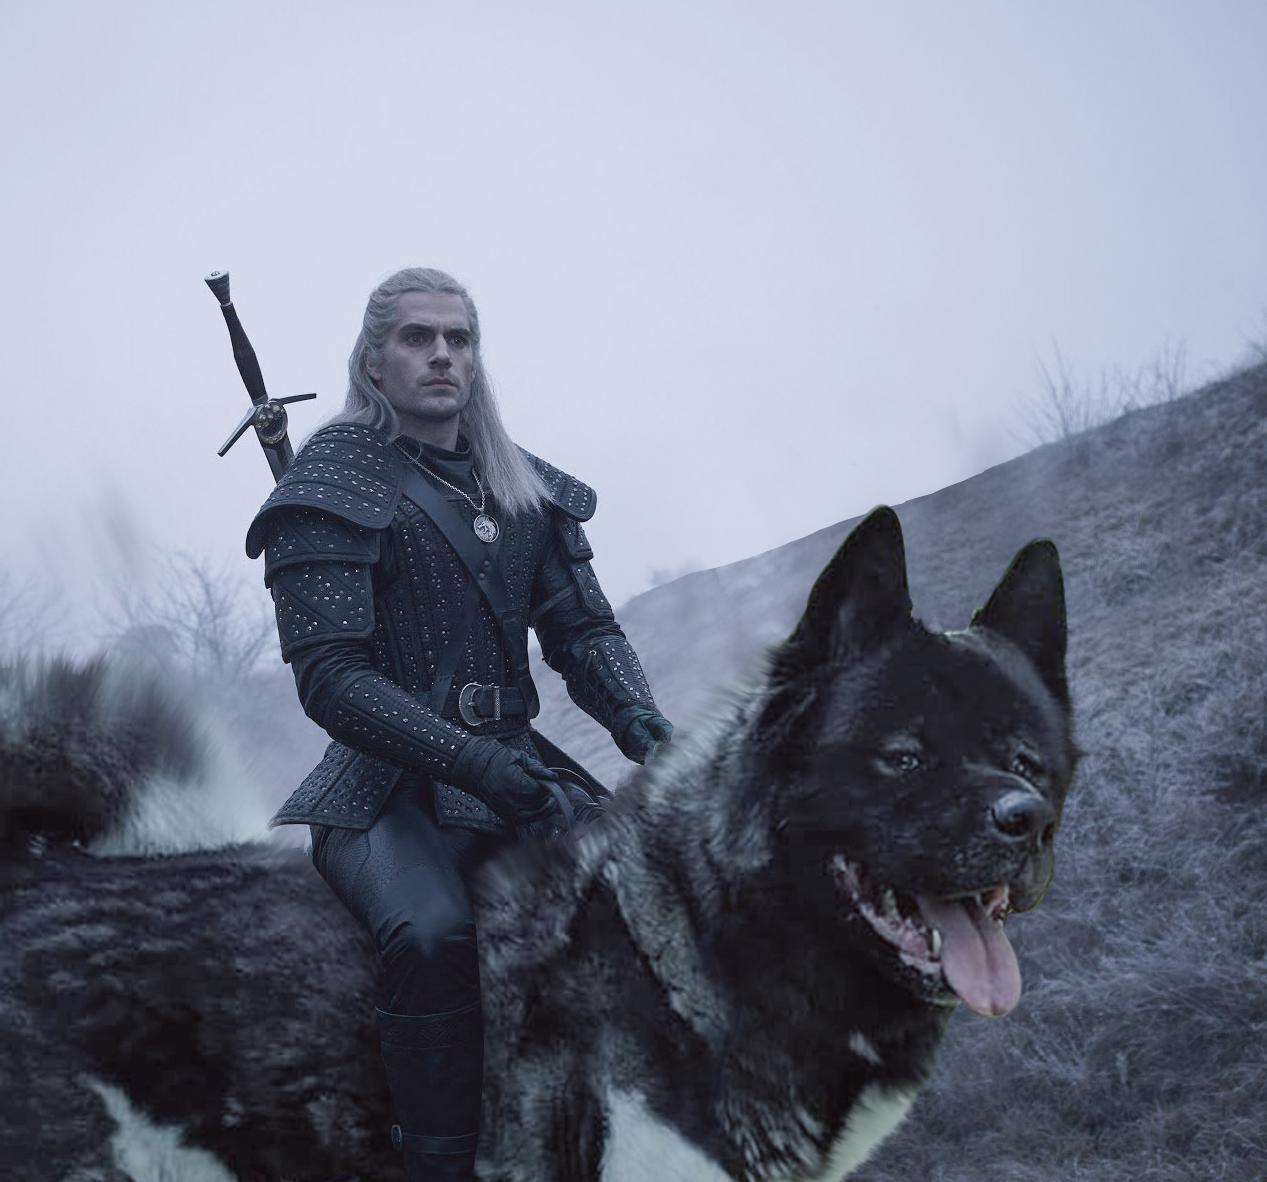 Fans Are Roasting Netflix After The Official Witcher Trailer